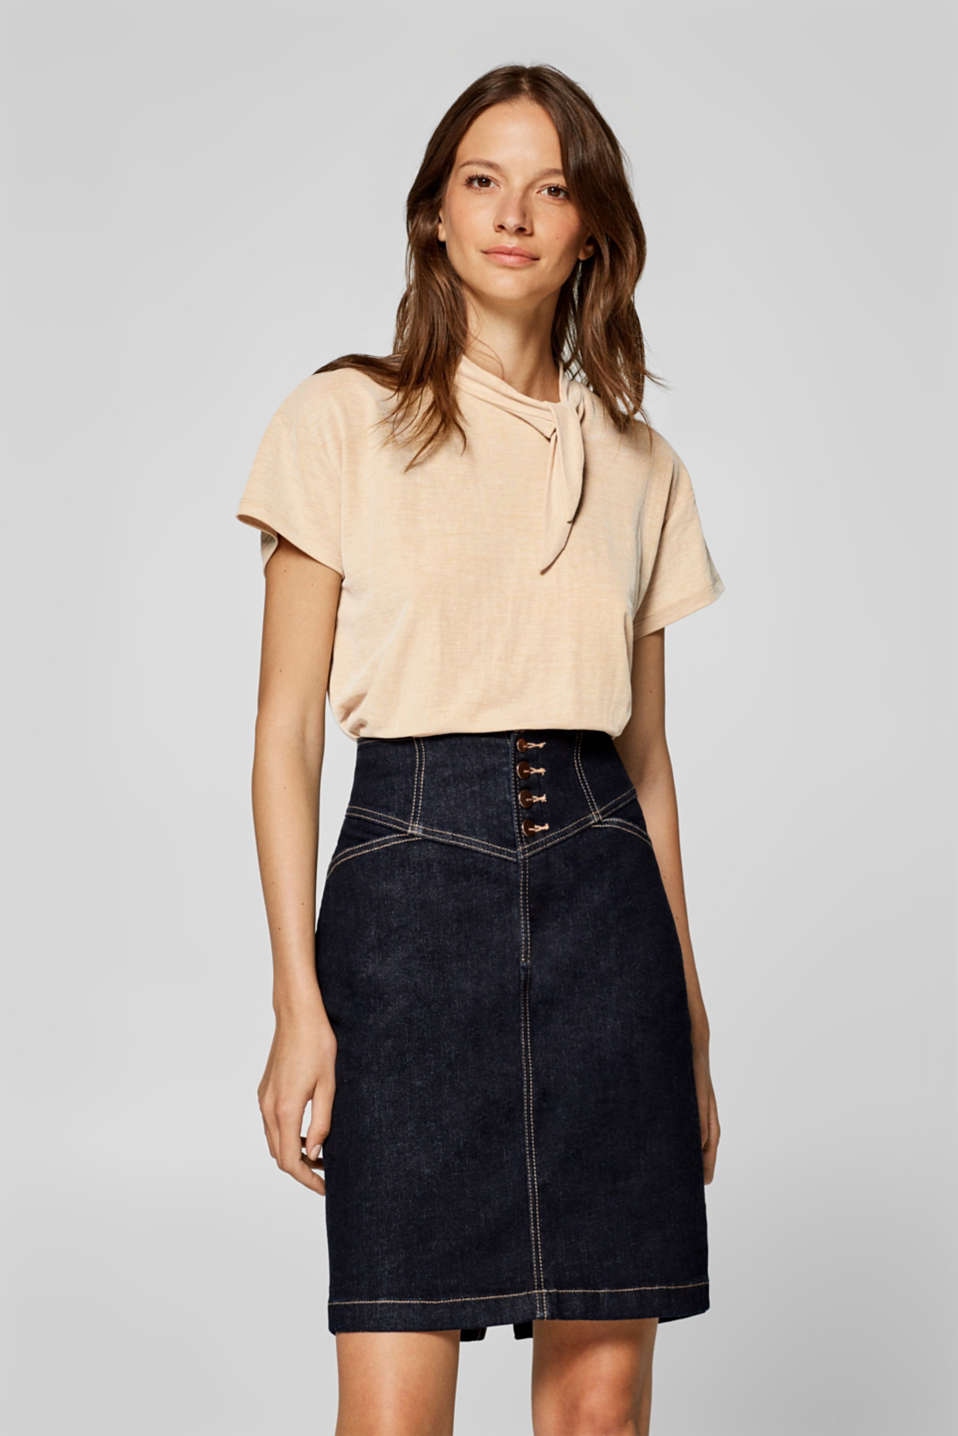 Esprit - Top with a band collar and a bow